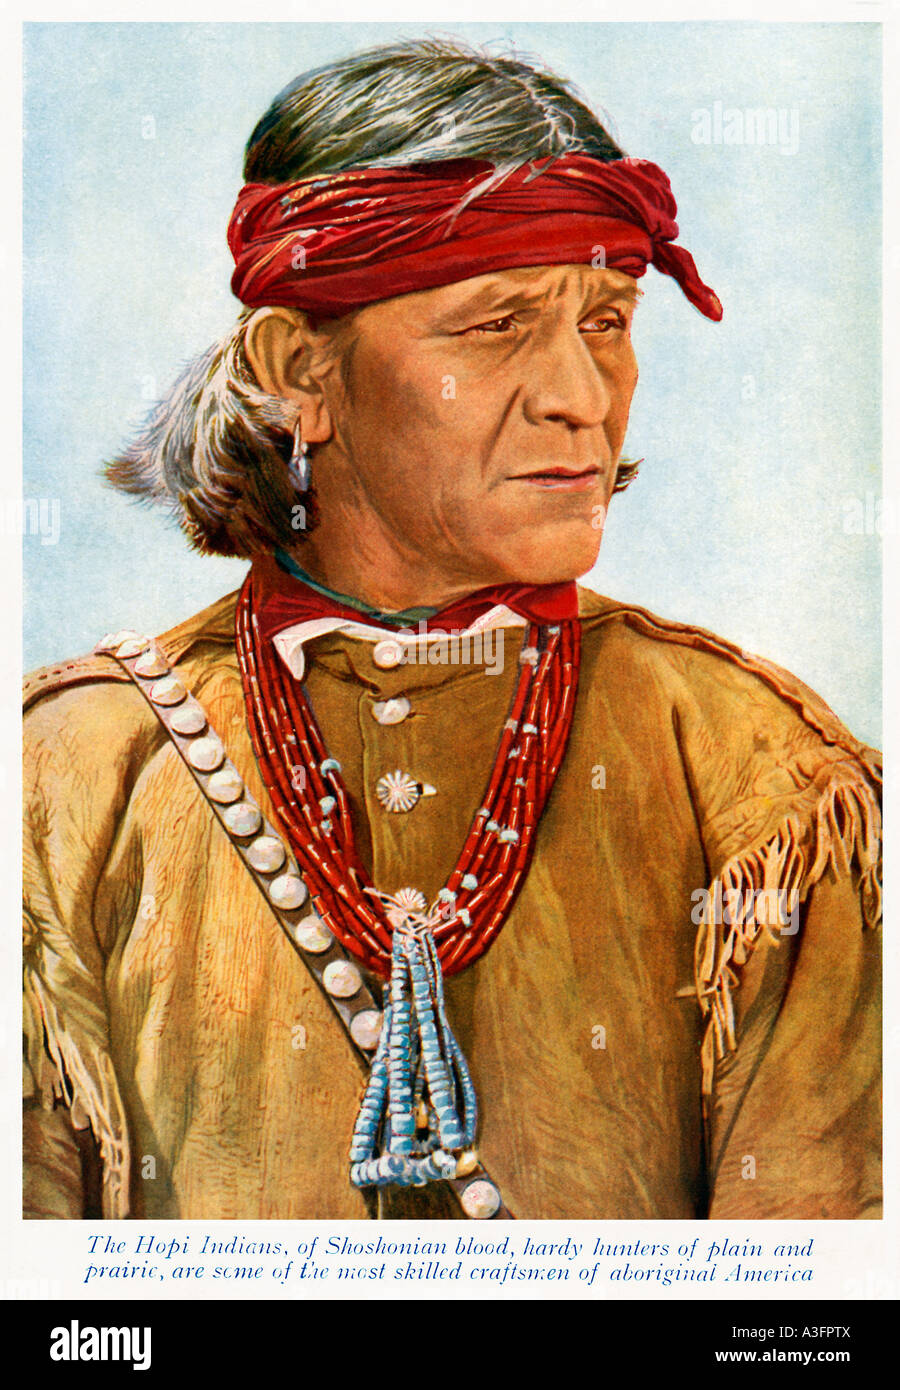 Hopi Indian 1920s colored photo of a Native American Hardy Hunter of Plain and Prairie - Stock Image